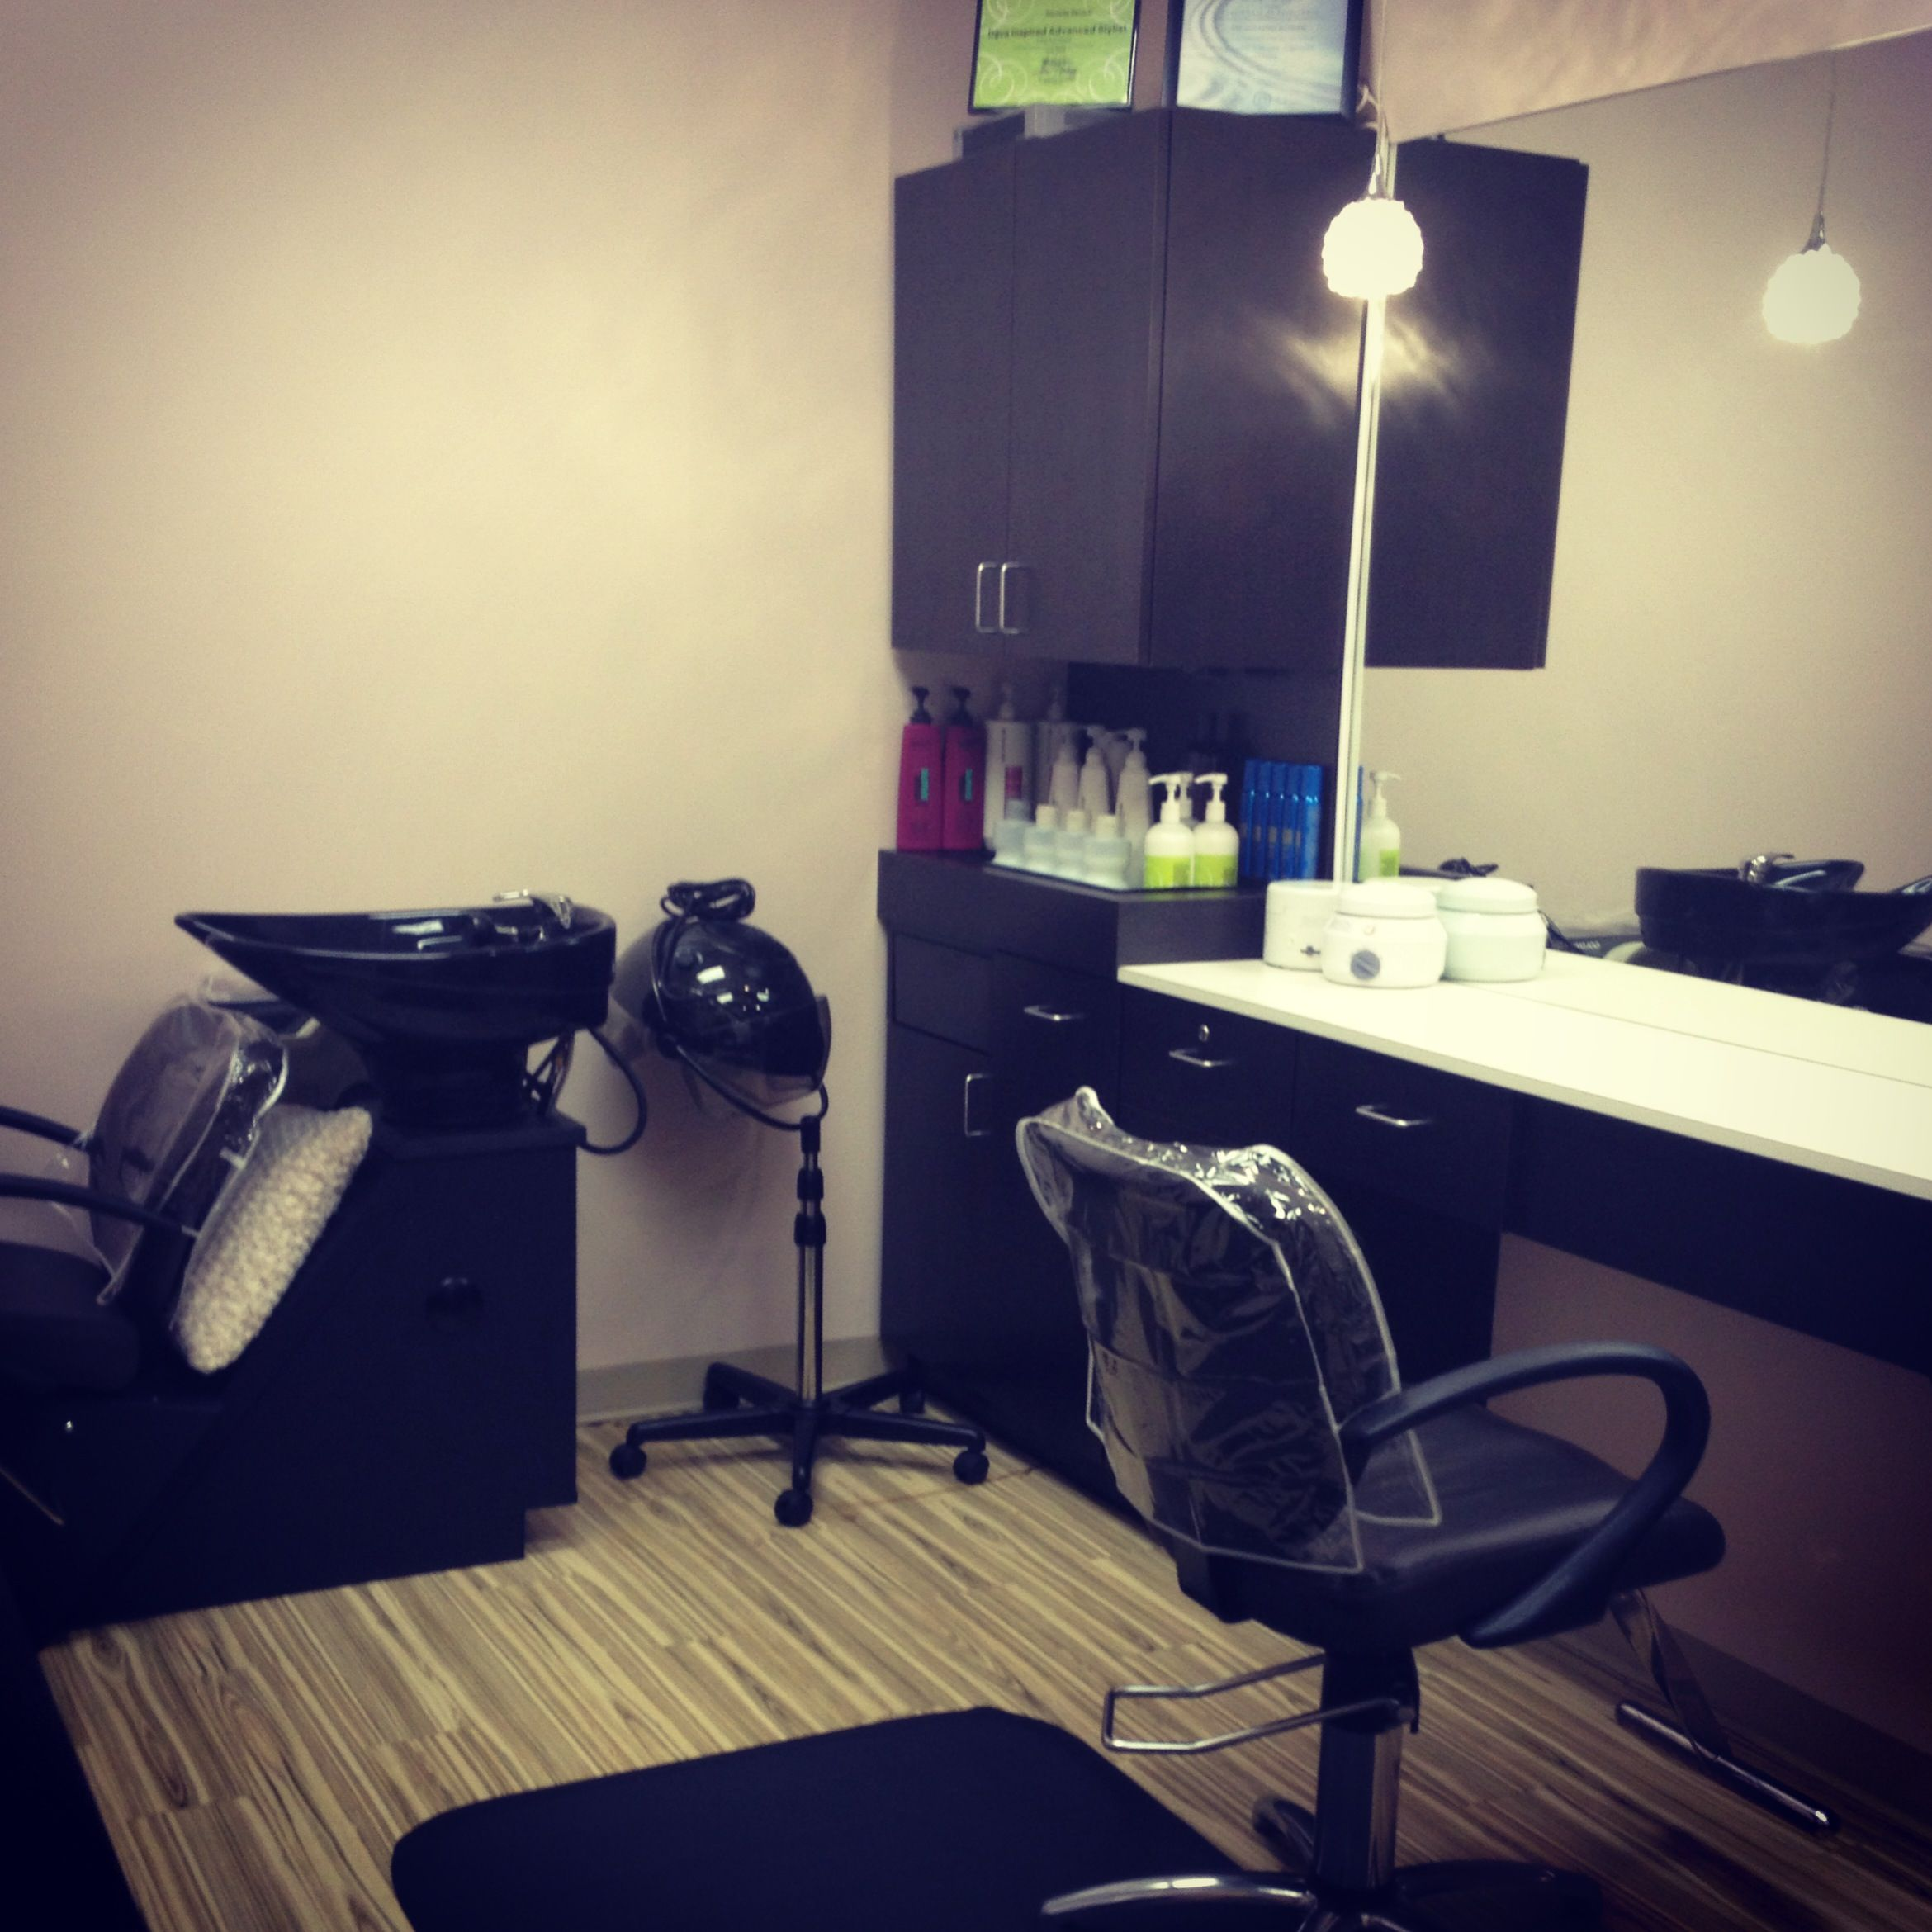 Here it is- my one room salon suite! 5650 W 86th St, suite 120 ...